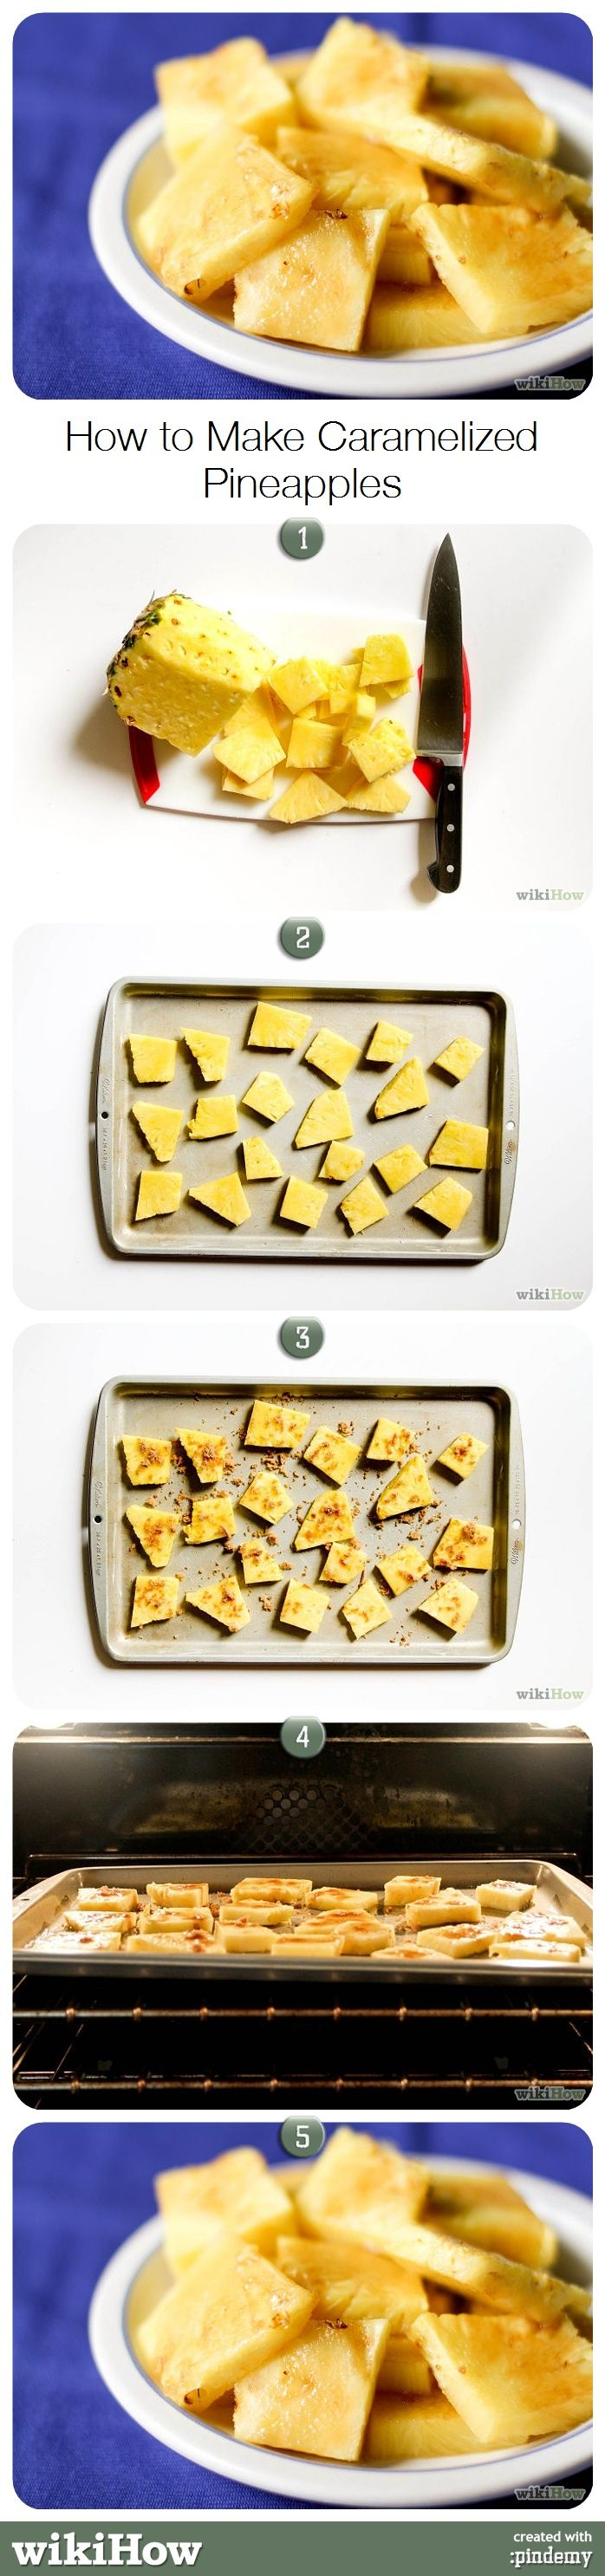 How to Make Caramelized Pineapple Slices #food #dessert